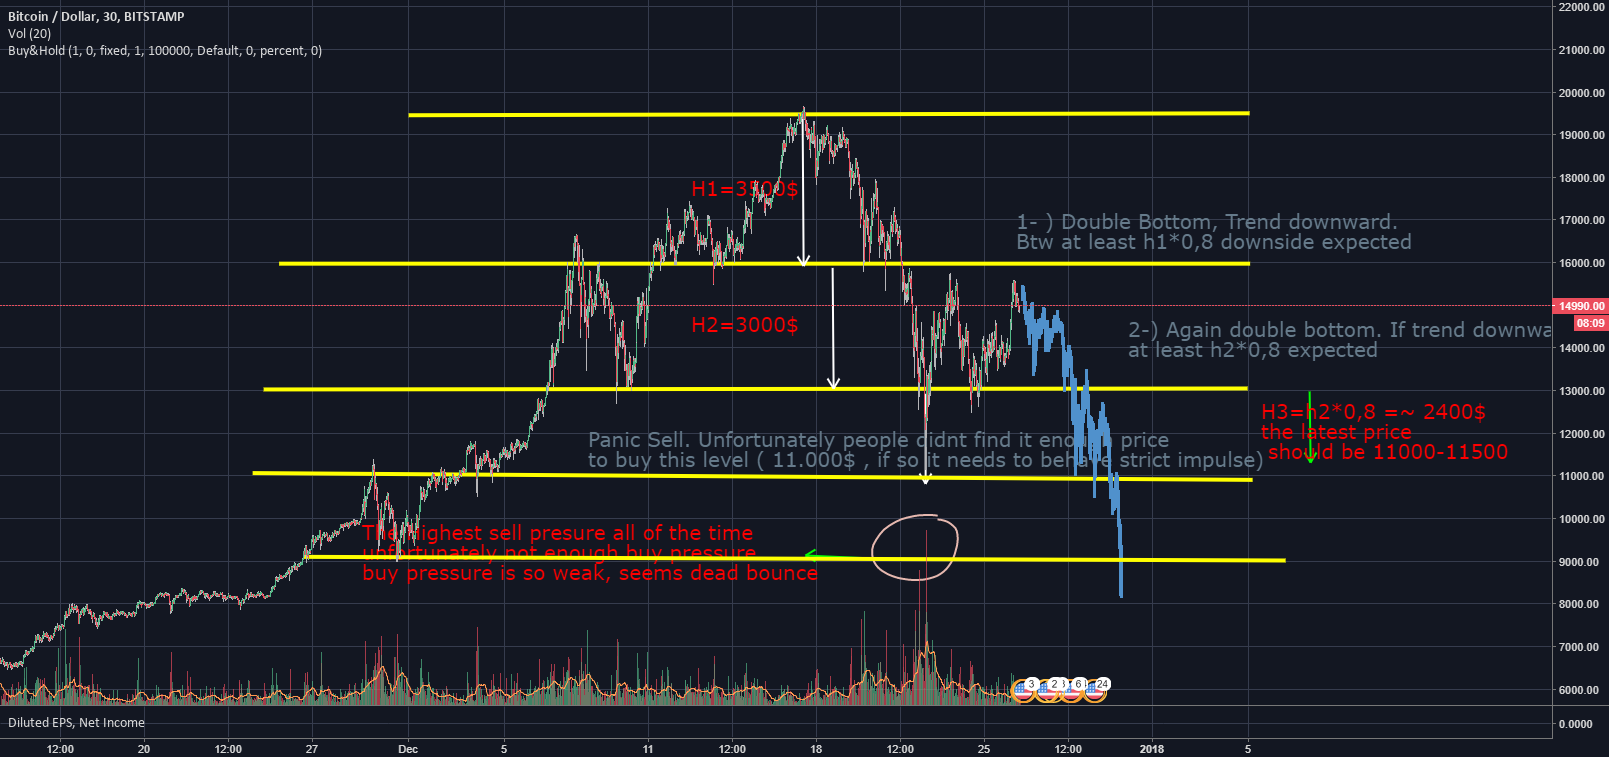 BTC - Not Enough Buy Pressure, Double Bottle , Danger